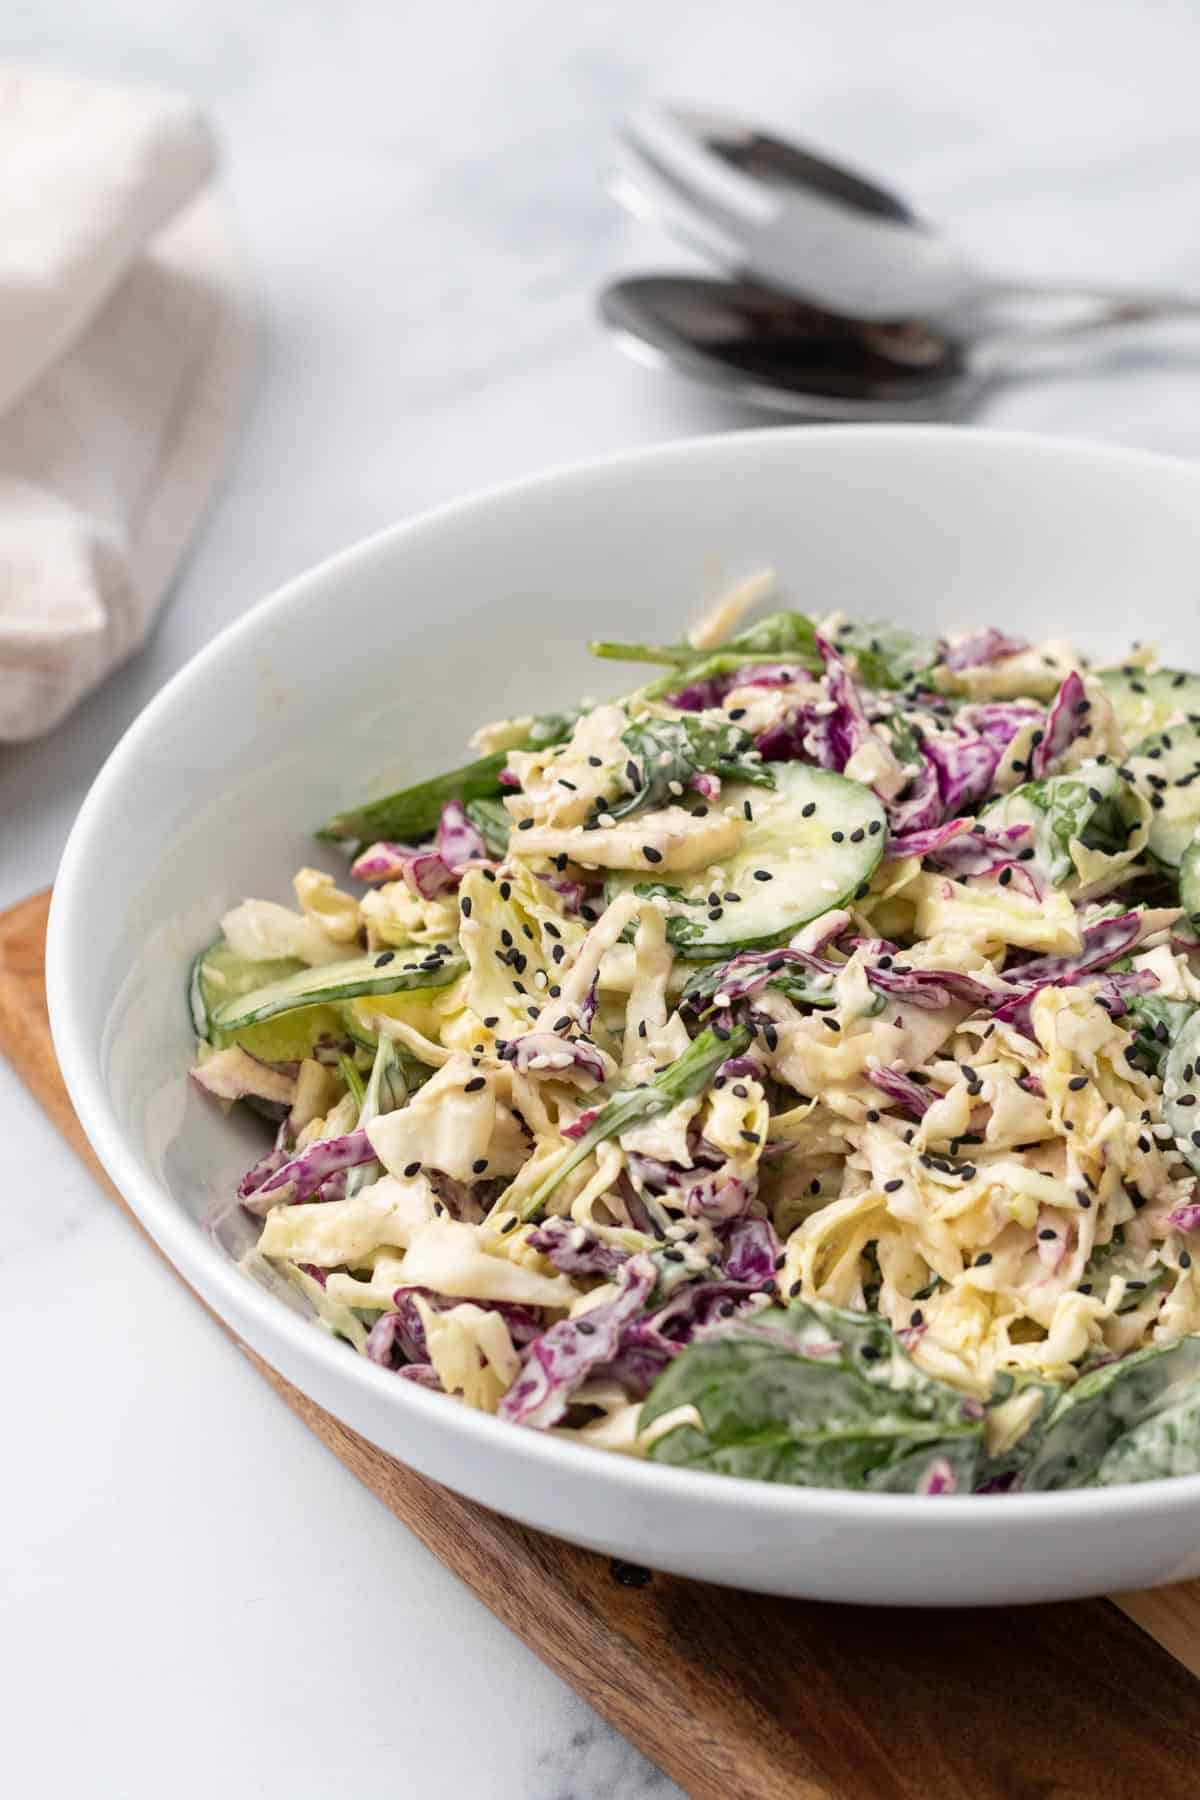 Purple cabbage salad in white bowl